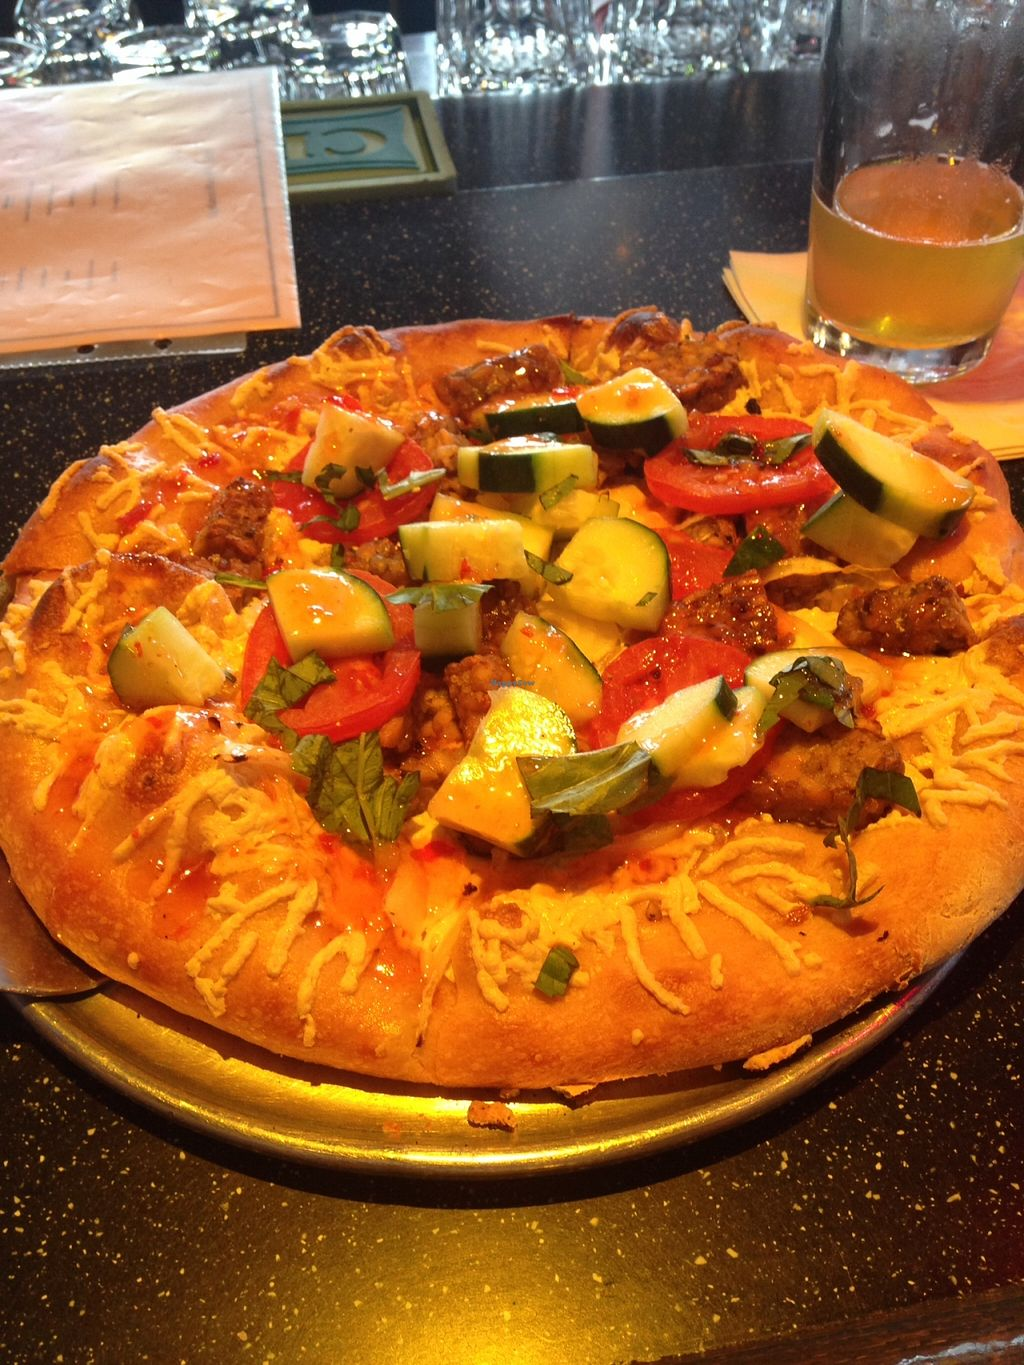 """Photo of Mellow Mushroom  by <a href=""""/members/profile/Manlyvegan"""">Manlyvegan</a> <br/>Vegan Thai Dye Pizza with Daiya, tempeh, cucumber, basil, tomato, and sweet chili sauce on a garlic olive oil base.  <br/> March 17, 2016  - <a href='/contact/abuse/image/71009/140326'>Report</a>"""